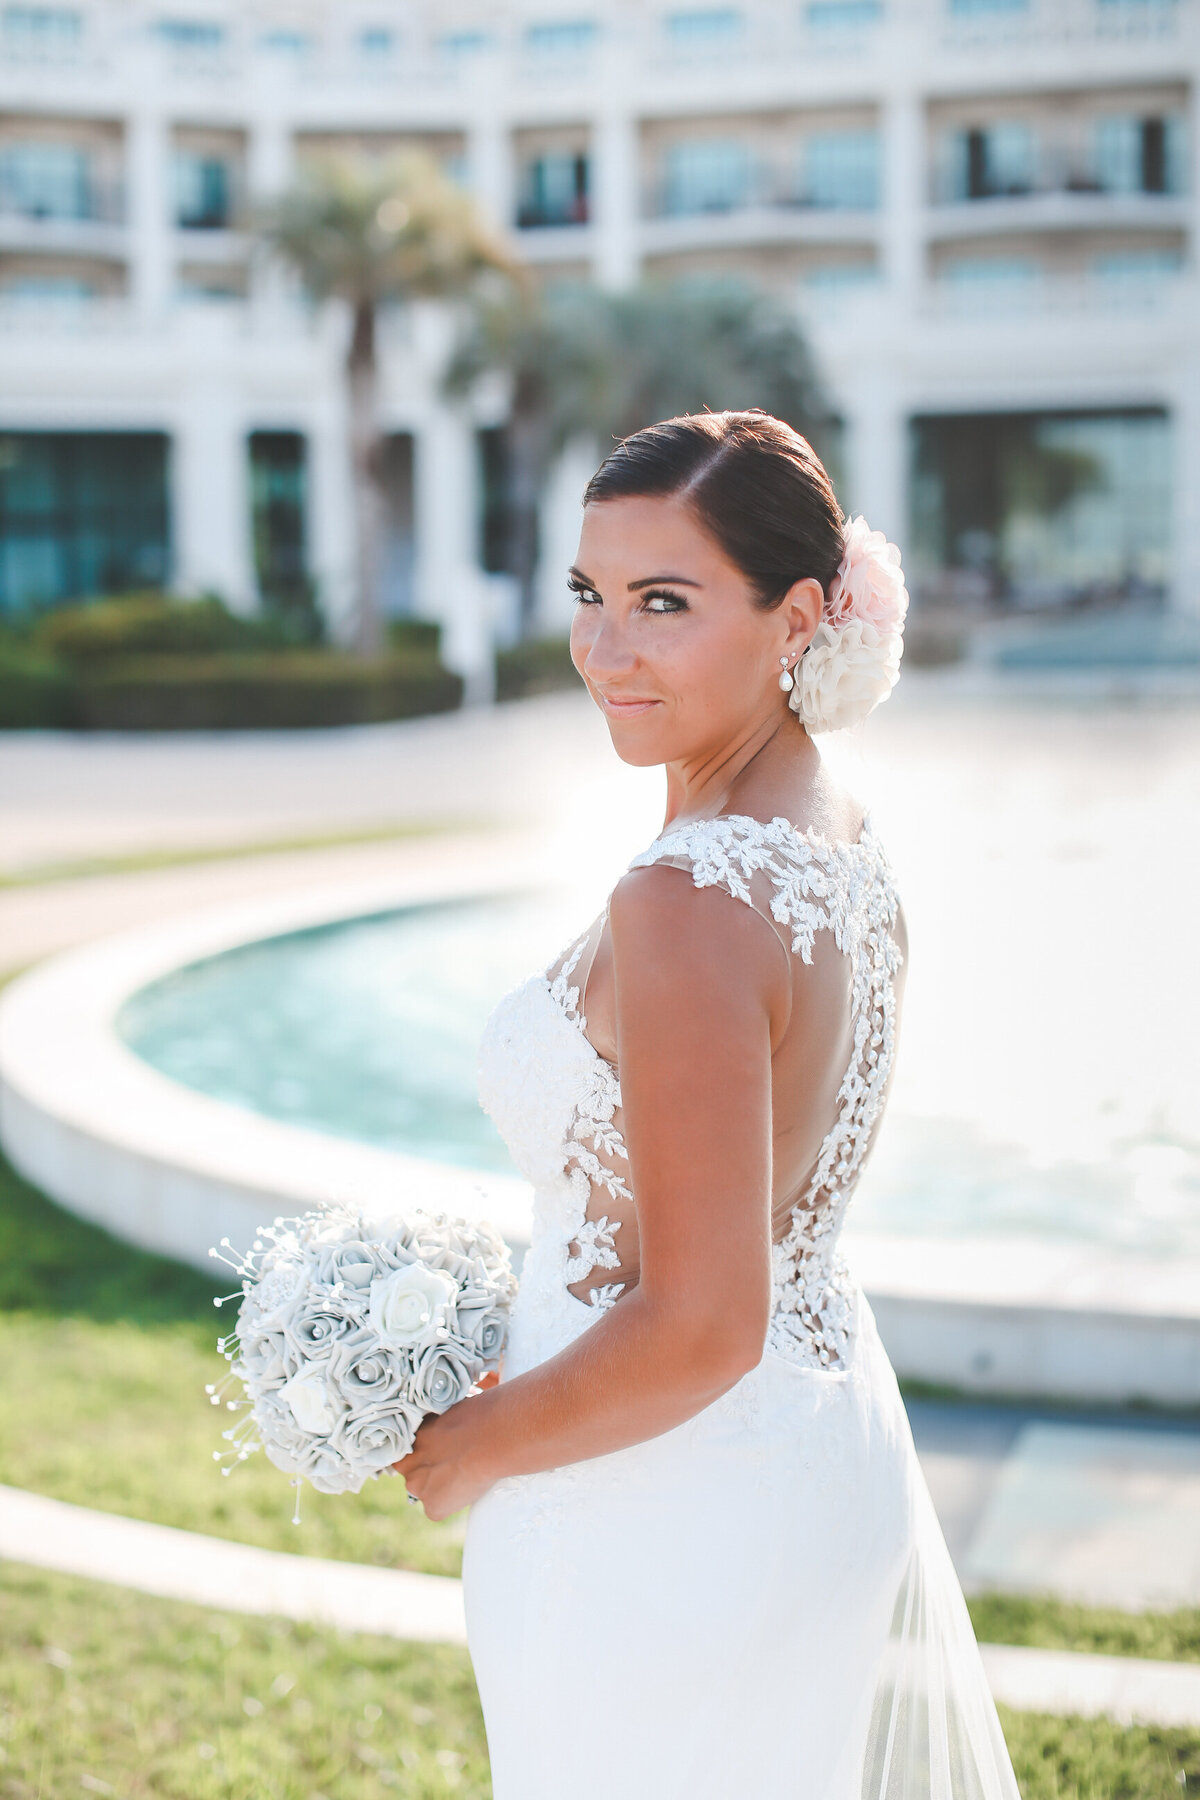 DESTINATION-WEDDING-SPAIN-HANNAH-MACGREGOR-PHOTOGRAPHY-0035